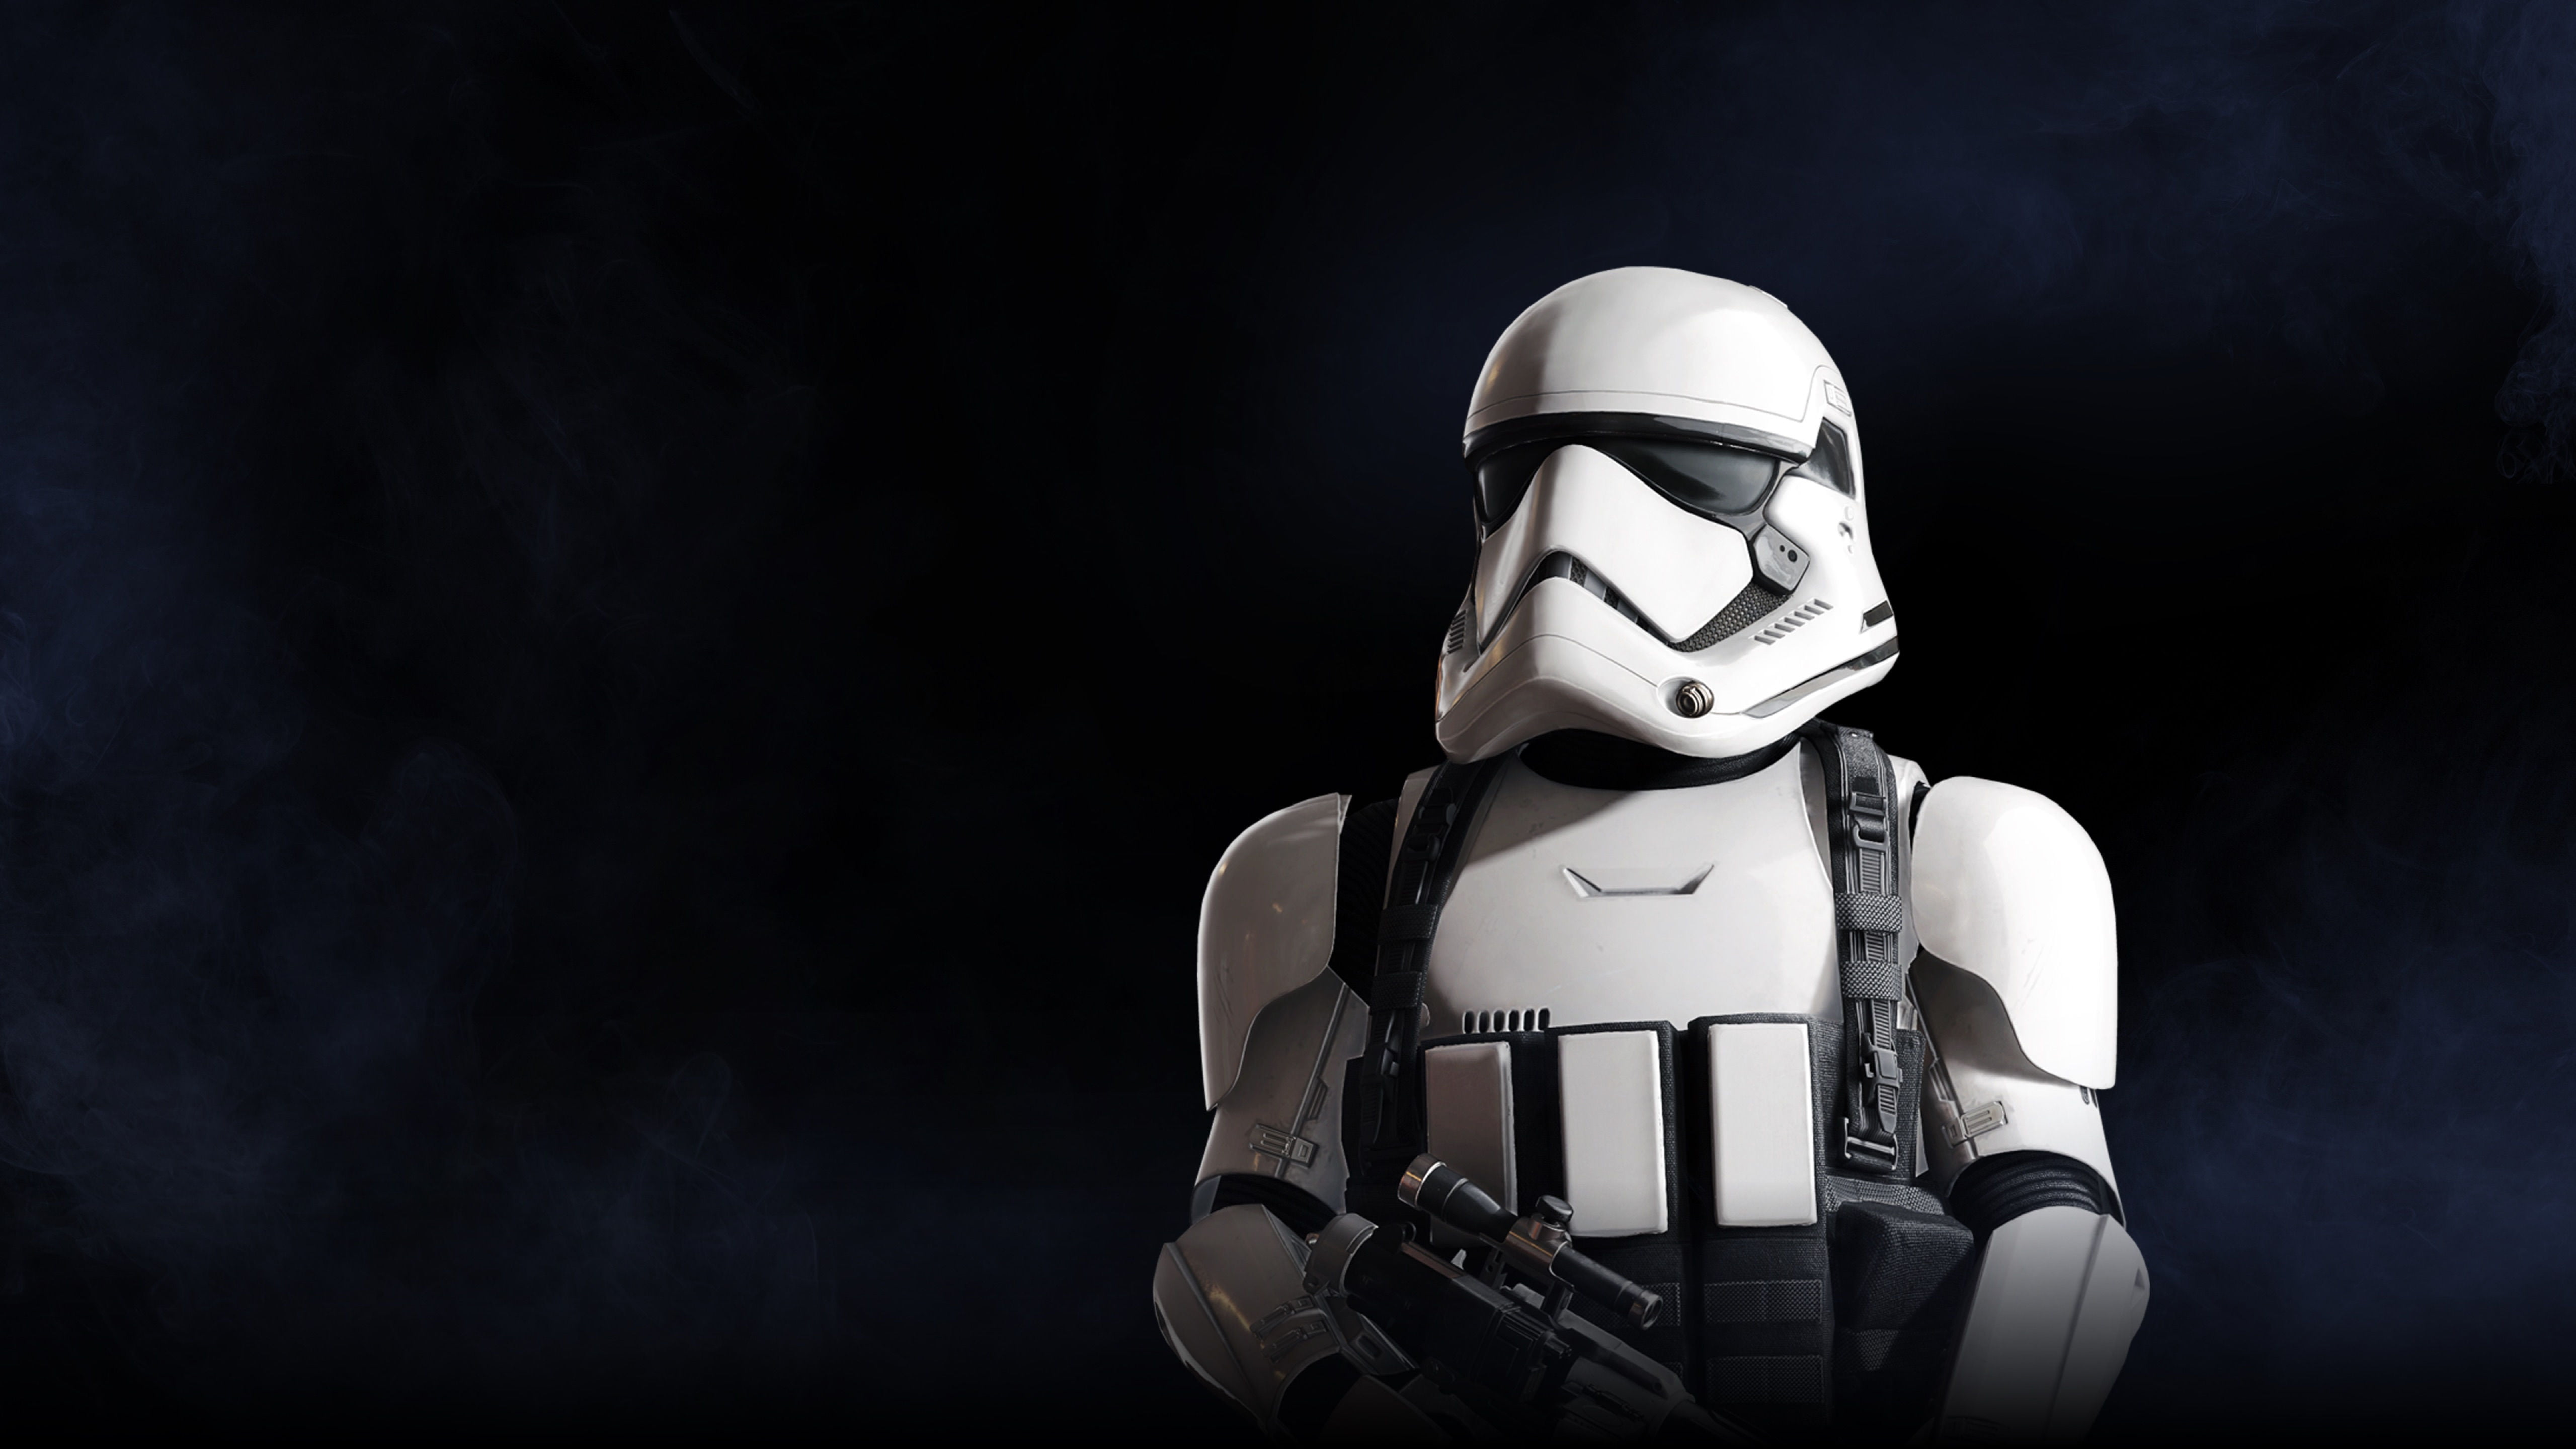 Photo of Star Wars clone trooper digital wallpaper HD